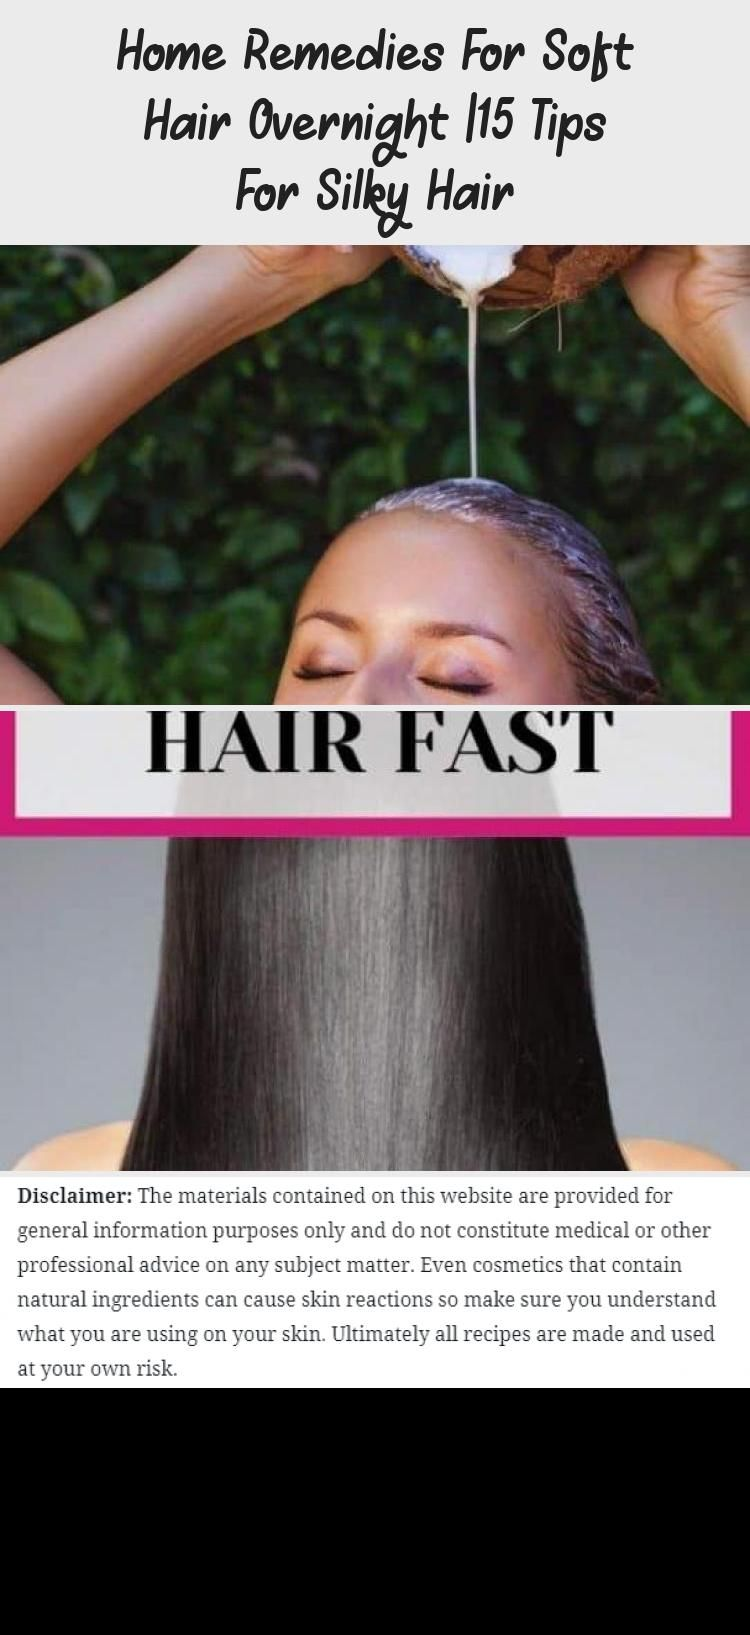 Dull Hair Learn How To Get Super Soft And Silky Hair Overnight With Effective Diy Remedies And Tips These Hair Masks Wo Silky Shiny Hair Silky Hair Soft Hair